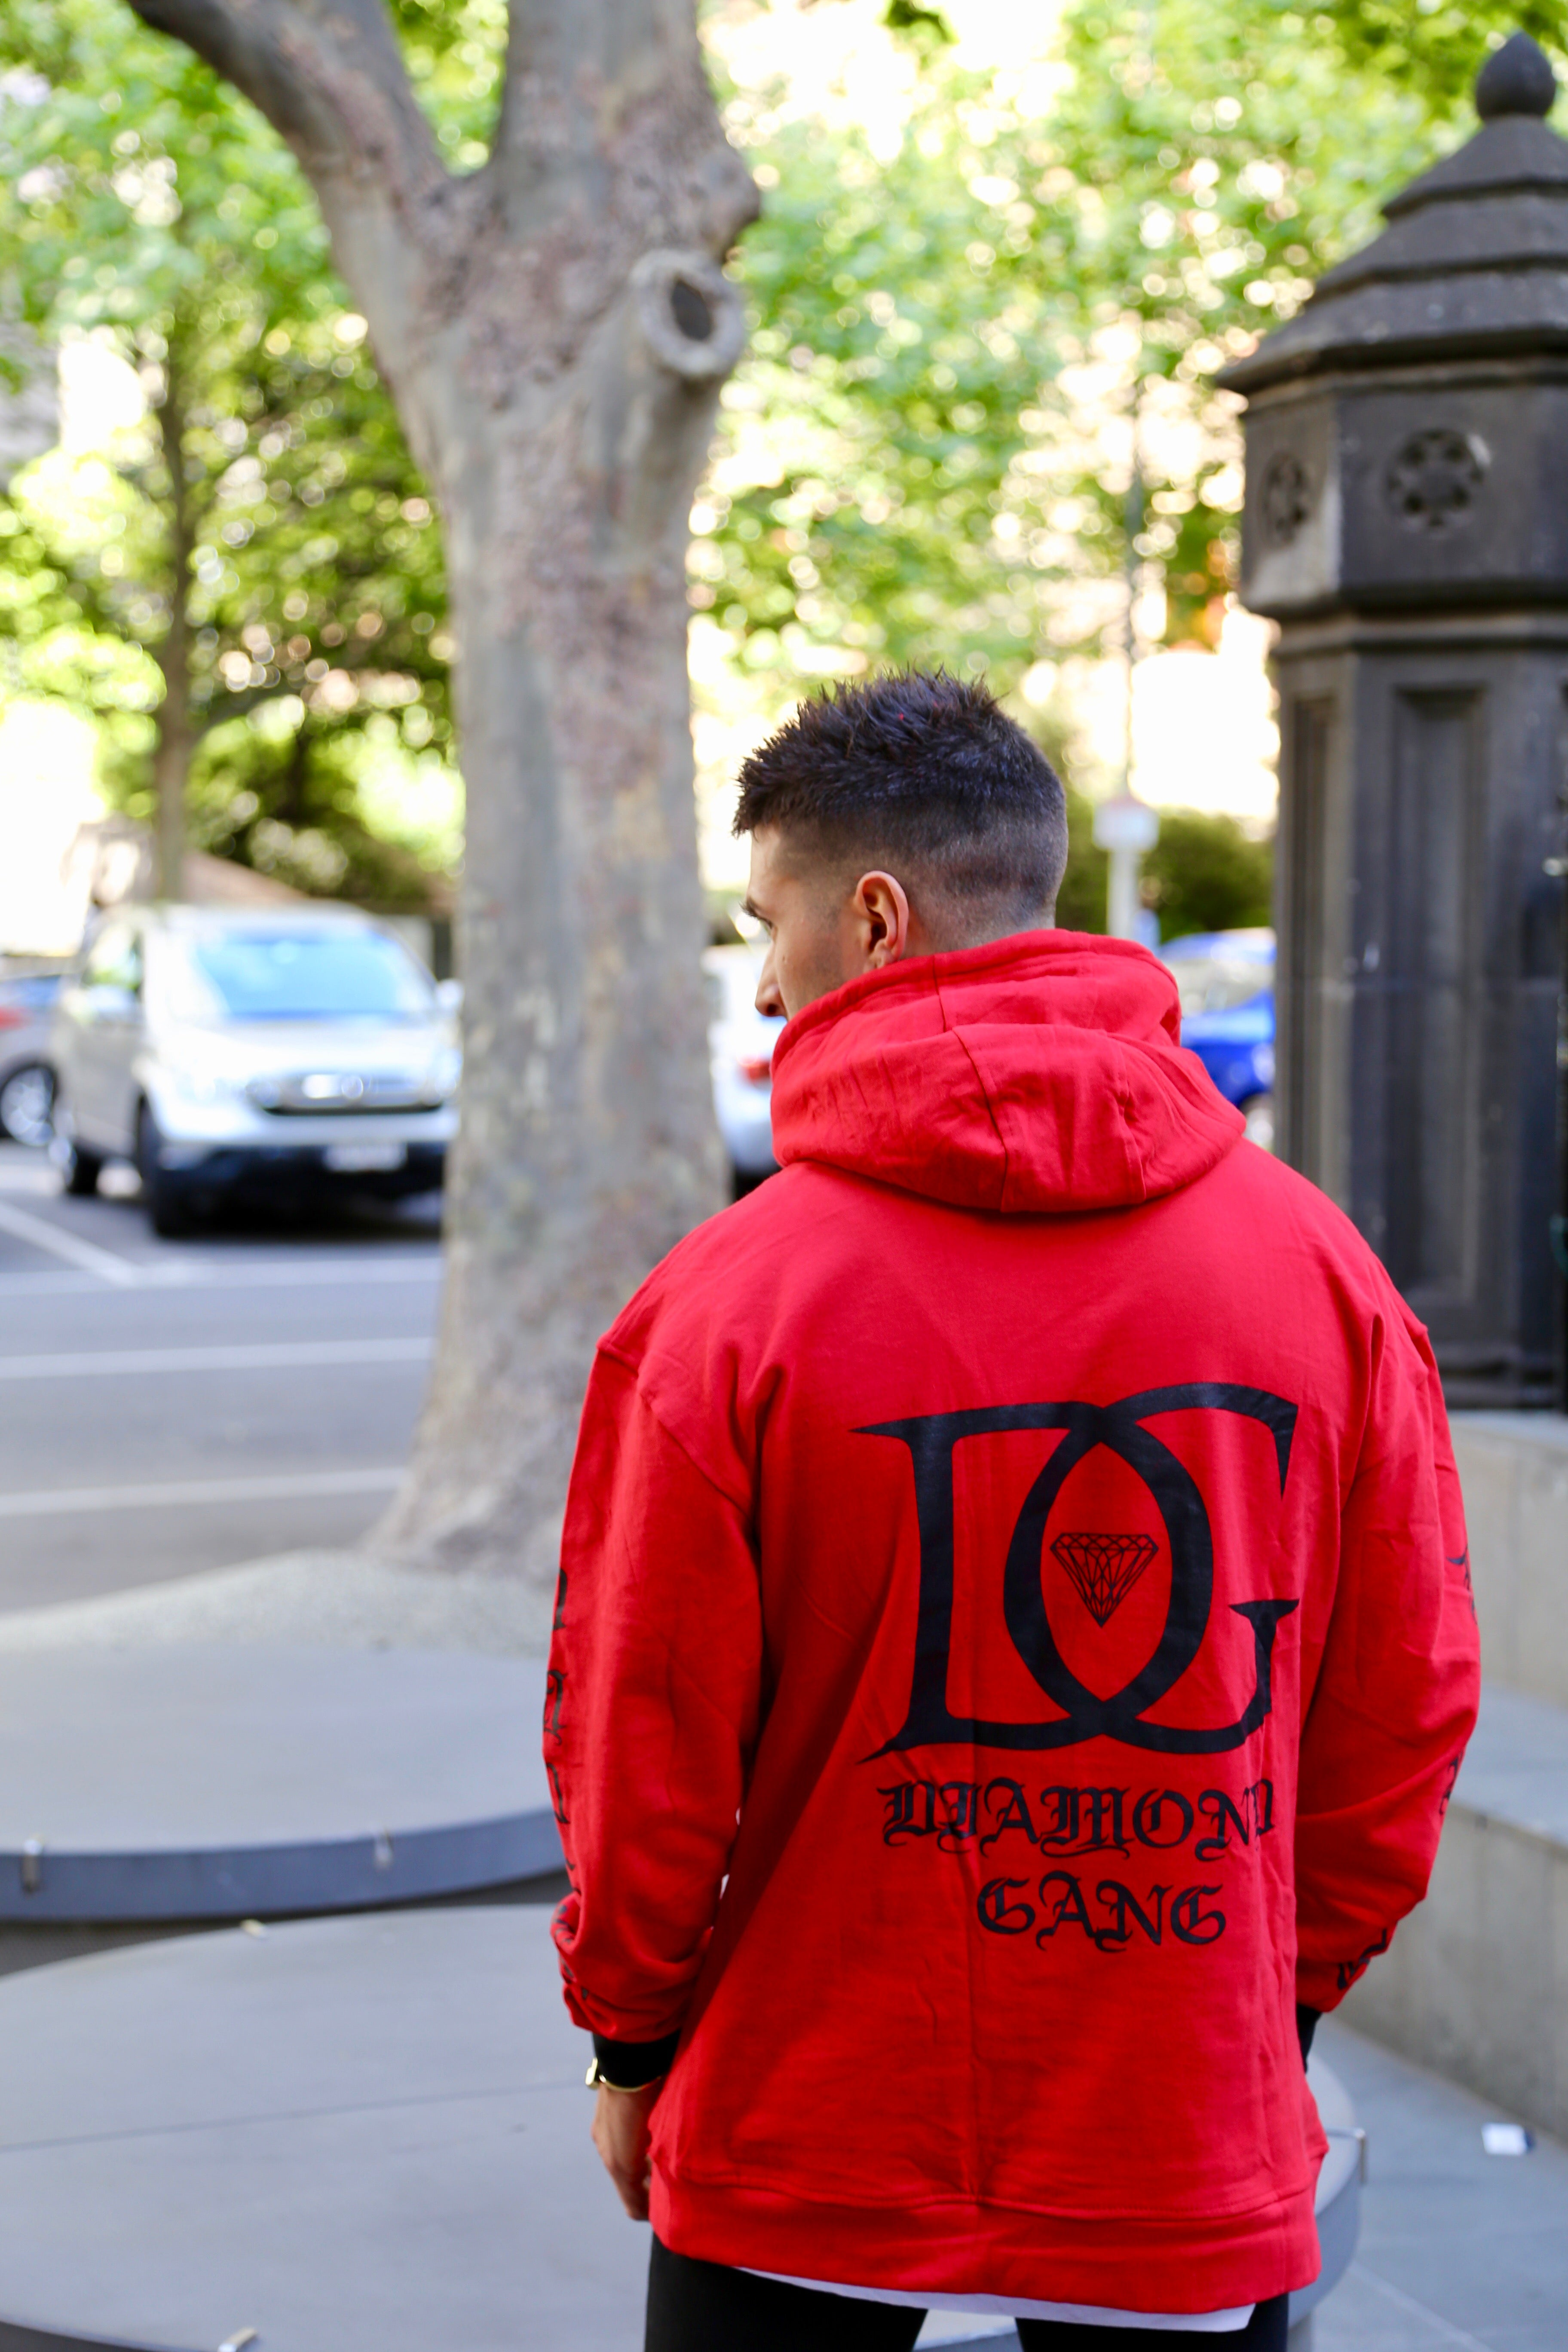 DIAMOND GANG - V2 CROSSOVER HOODIE - RED